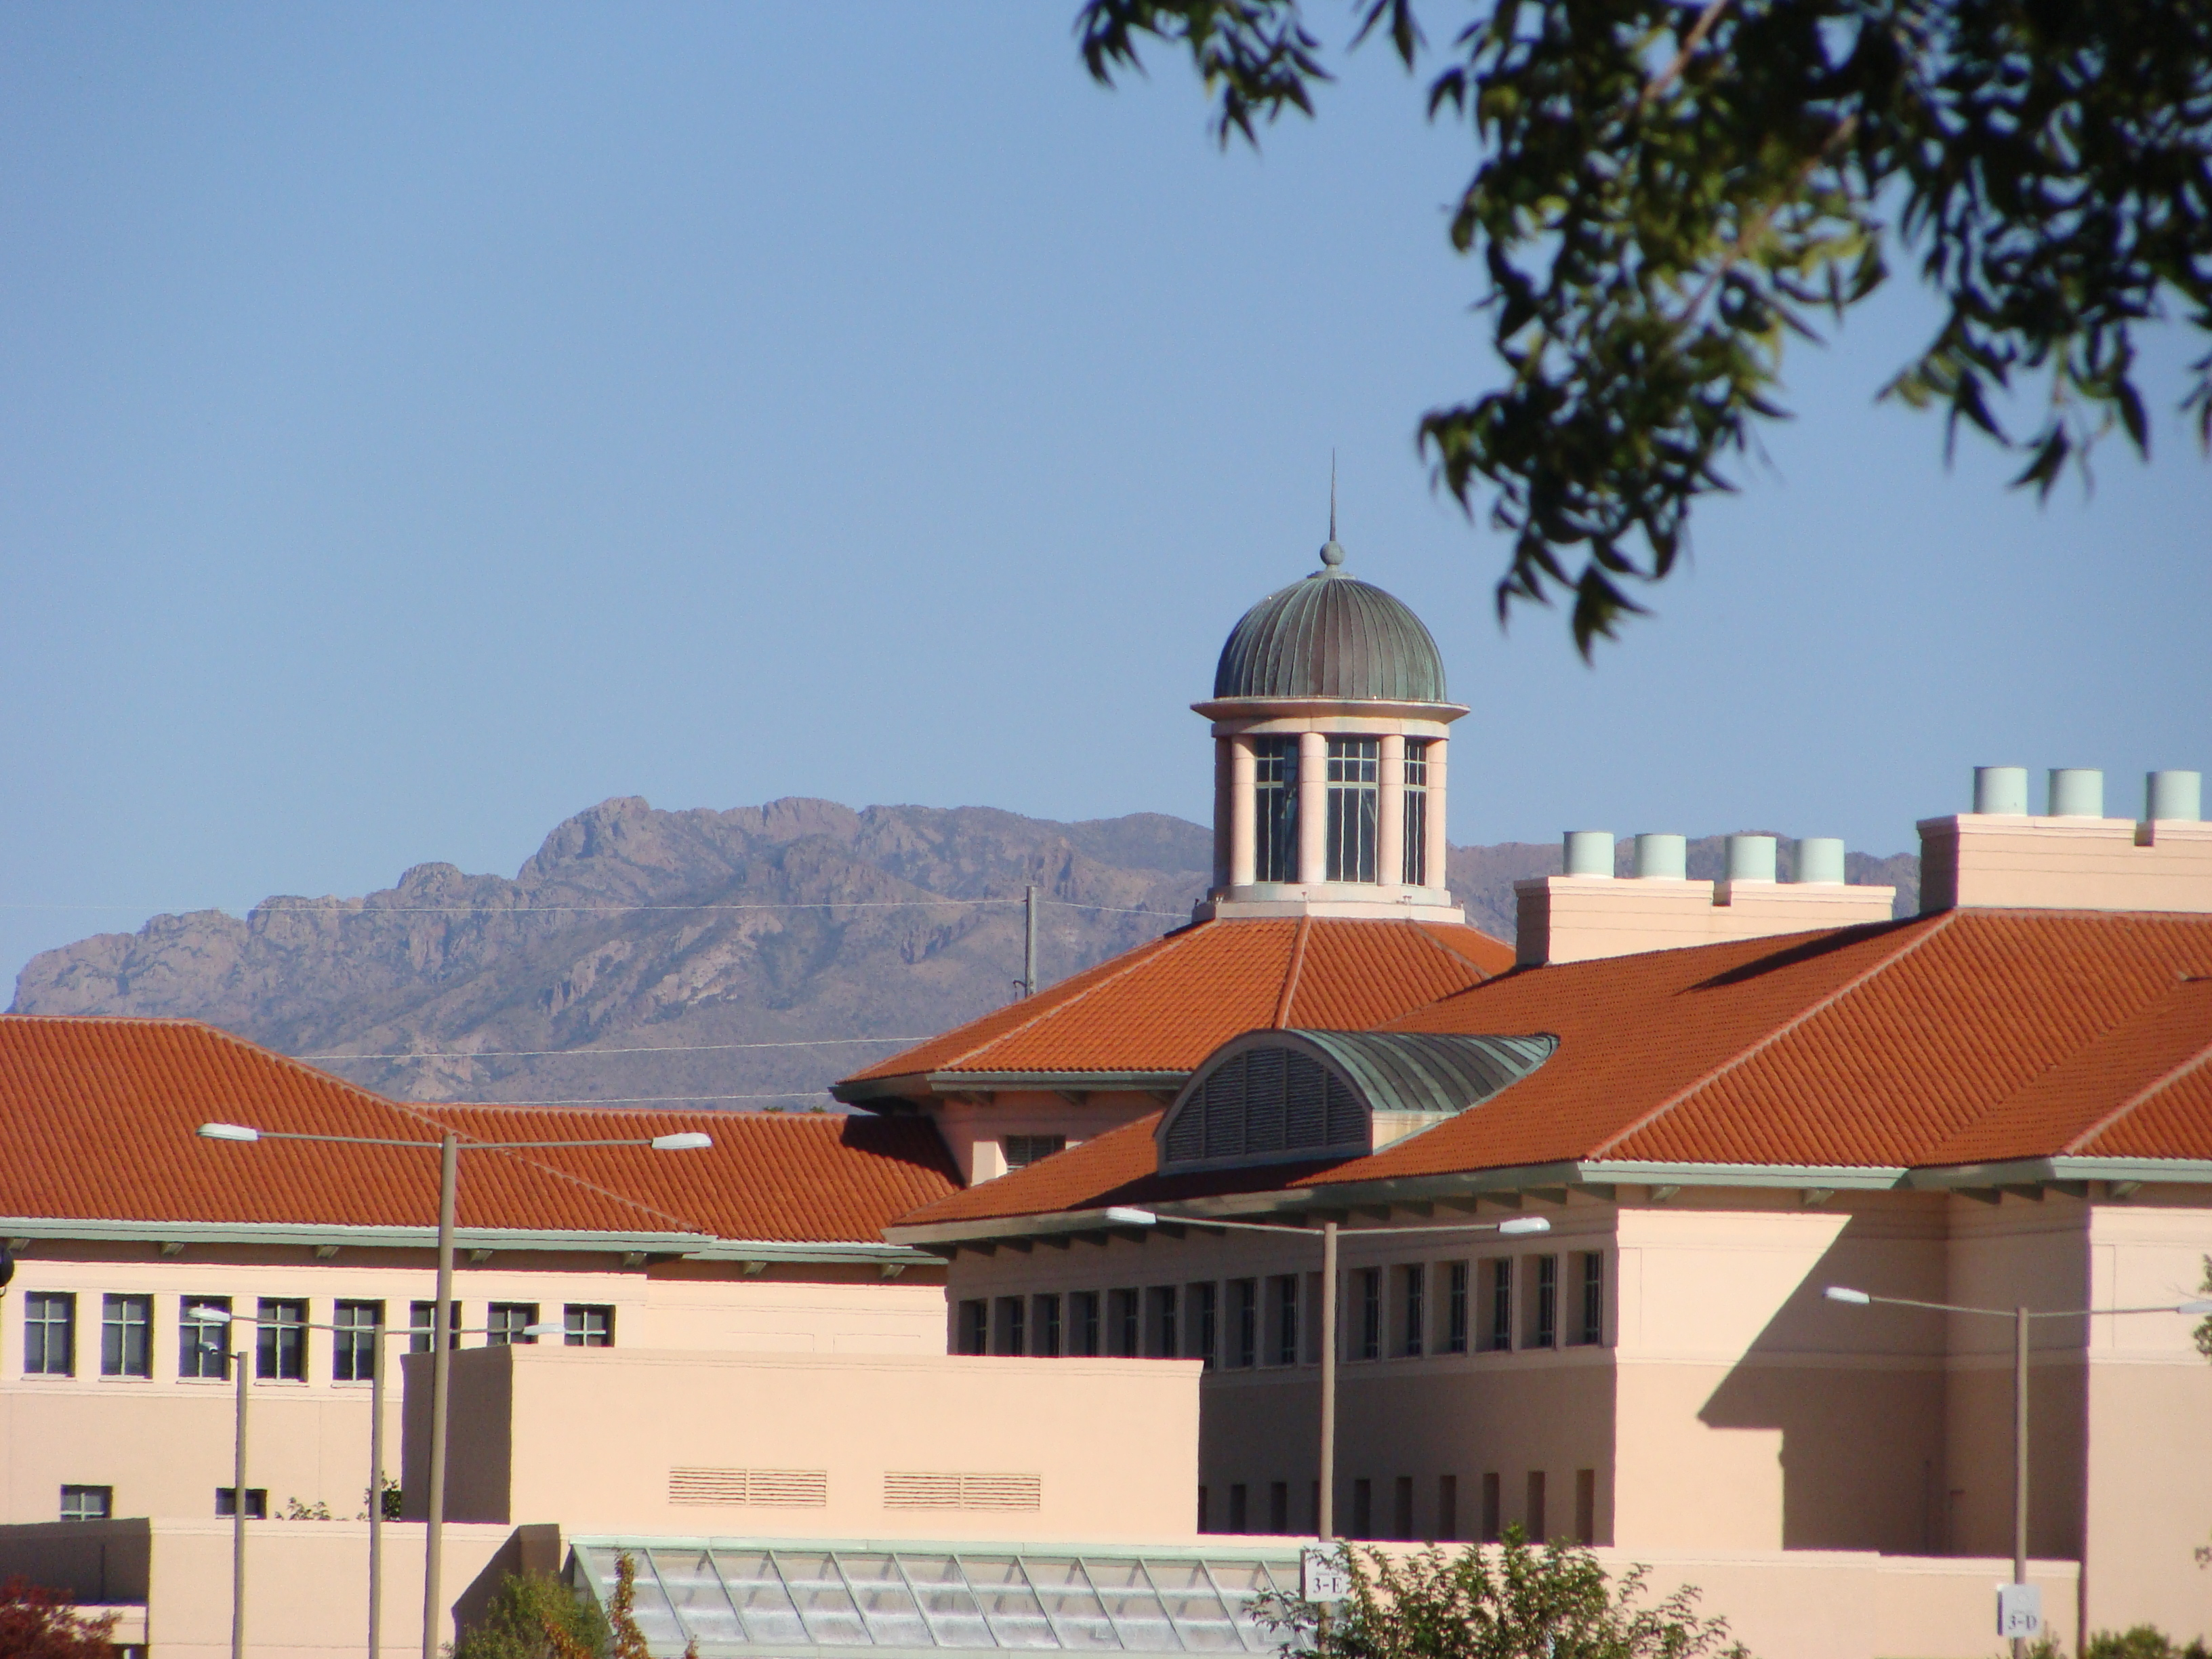 Las Cruces hosts the main campus of